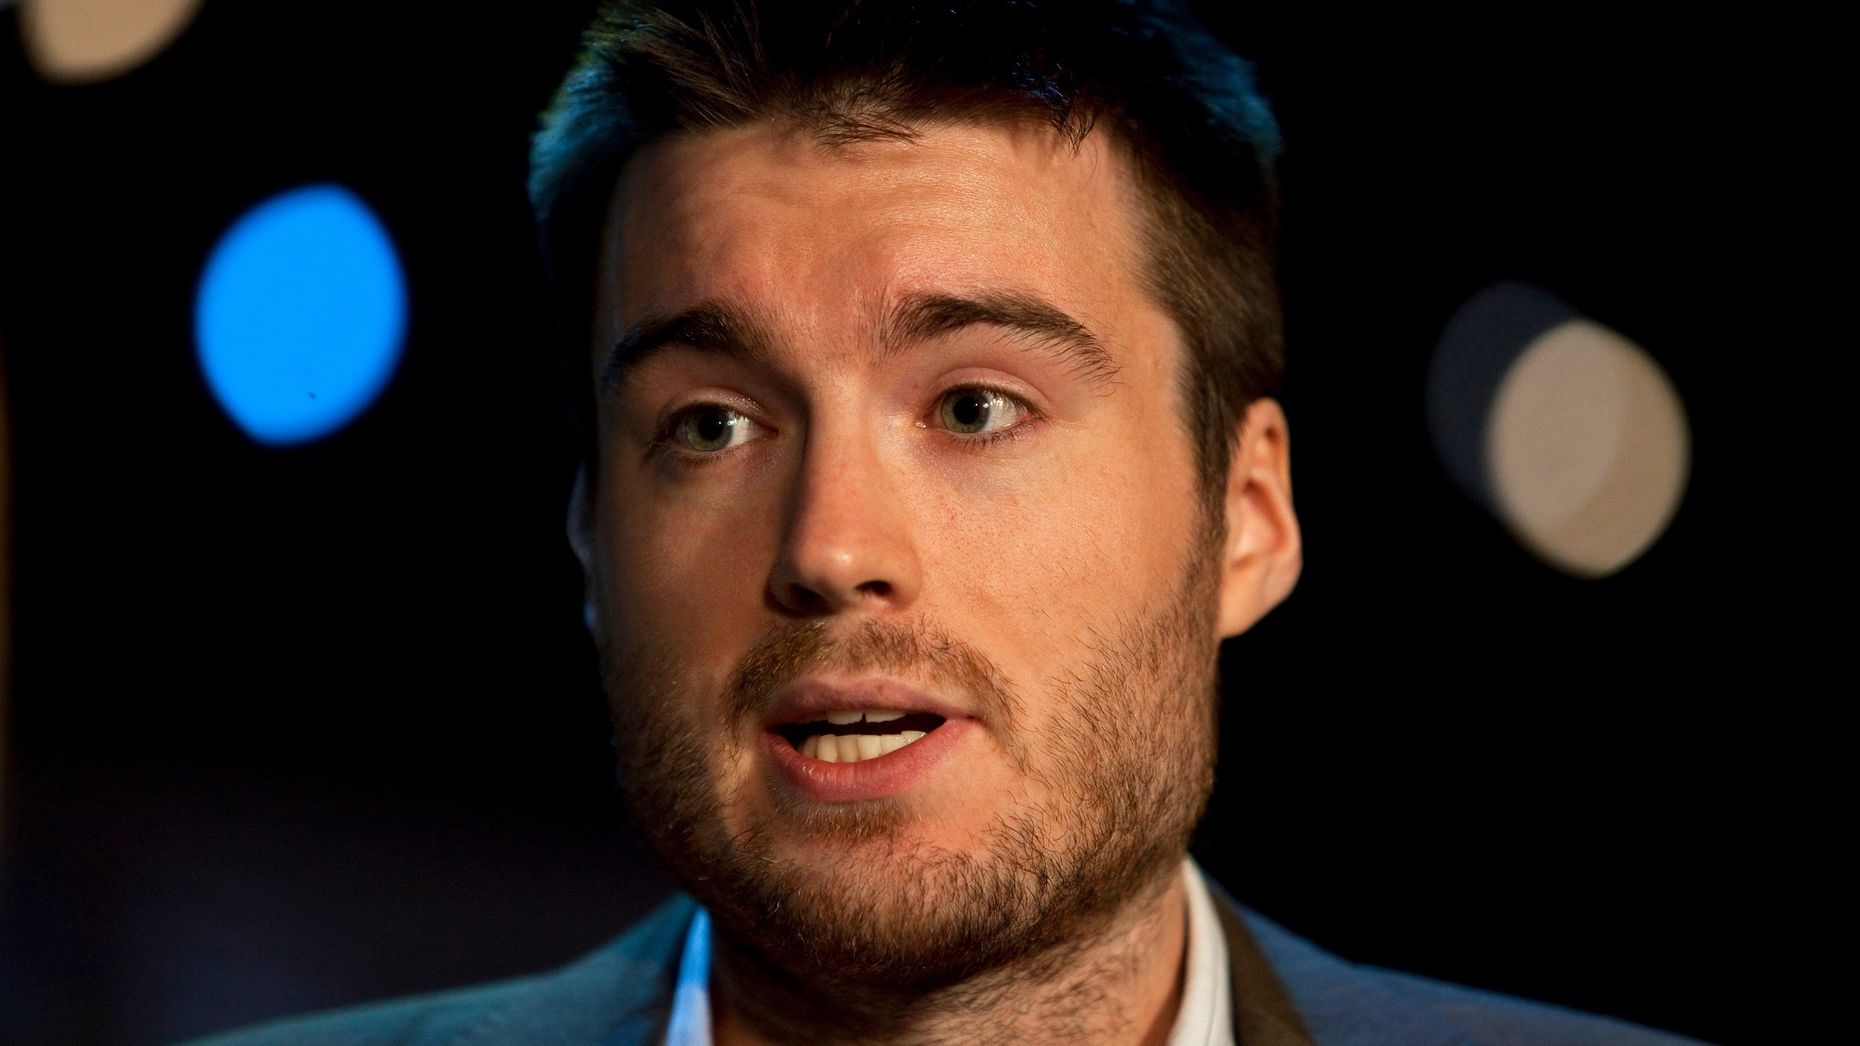 Pete Cashmore. Photo by Bloomberg.